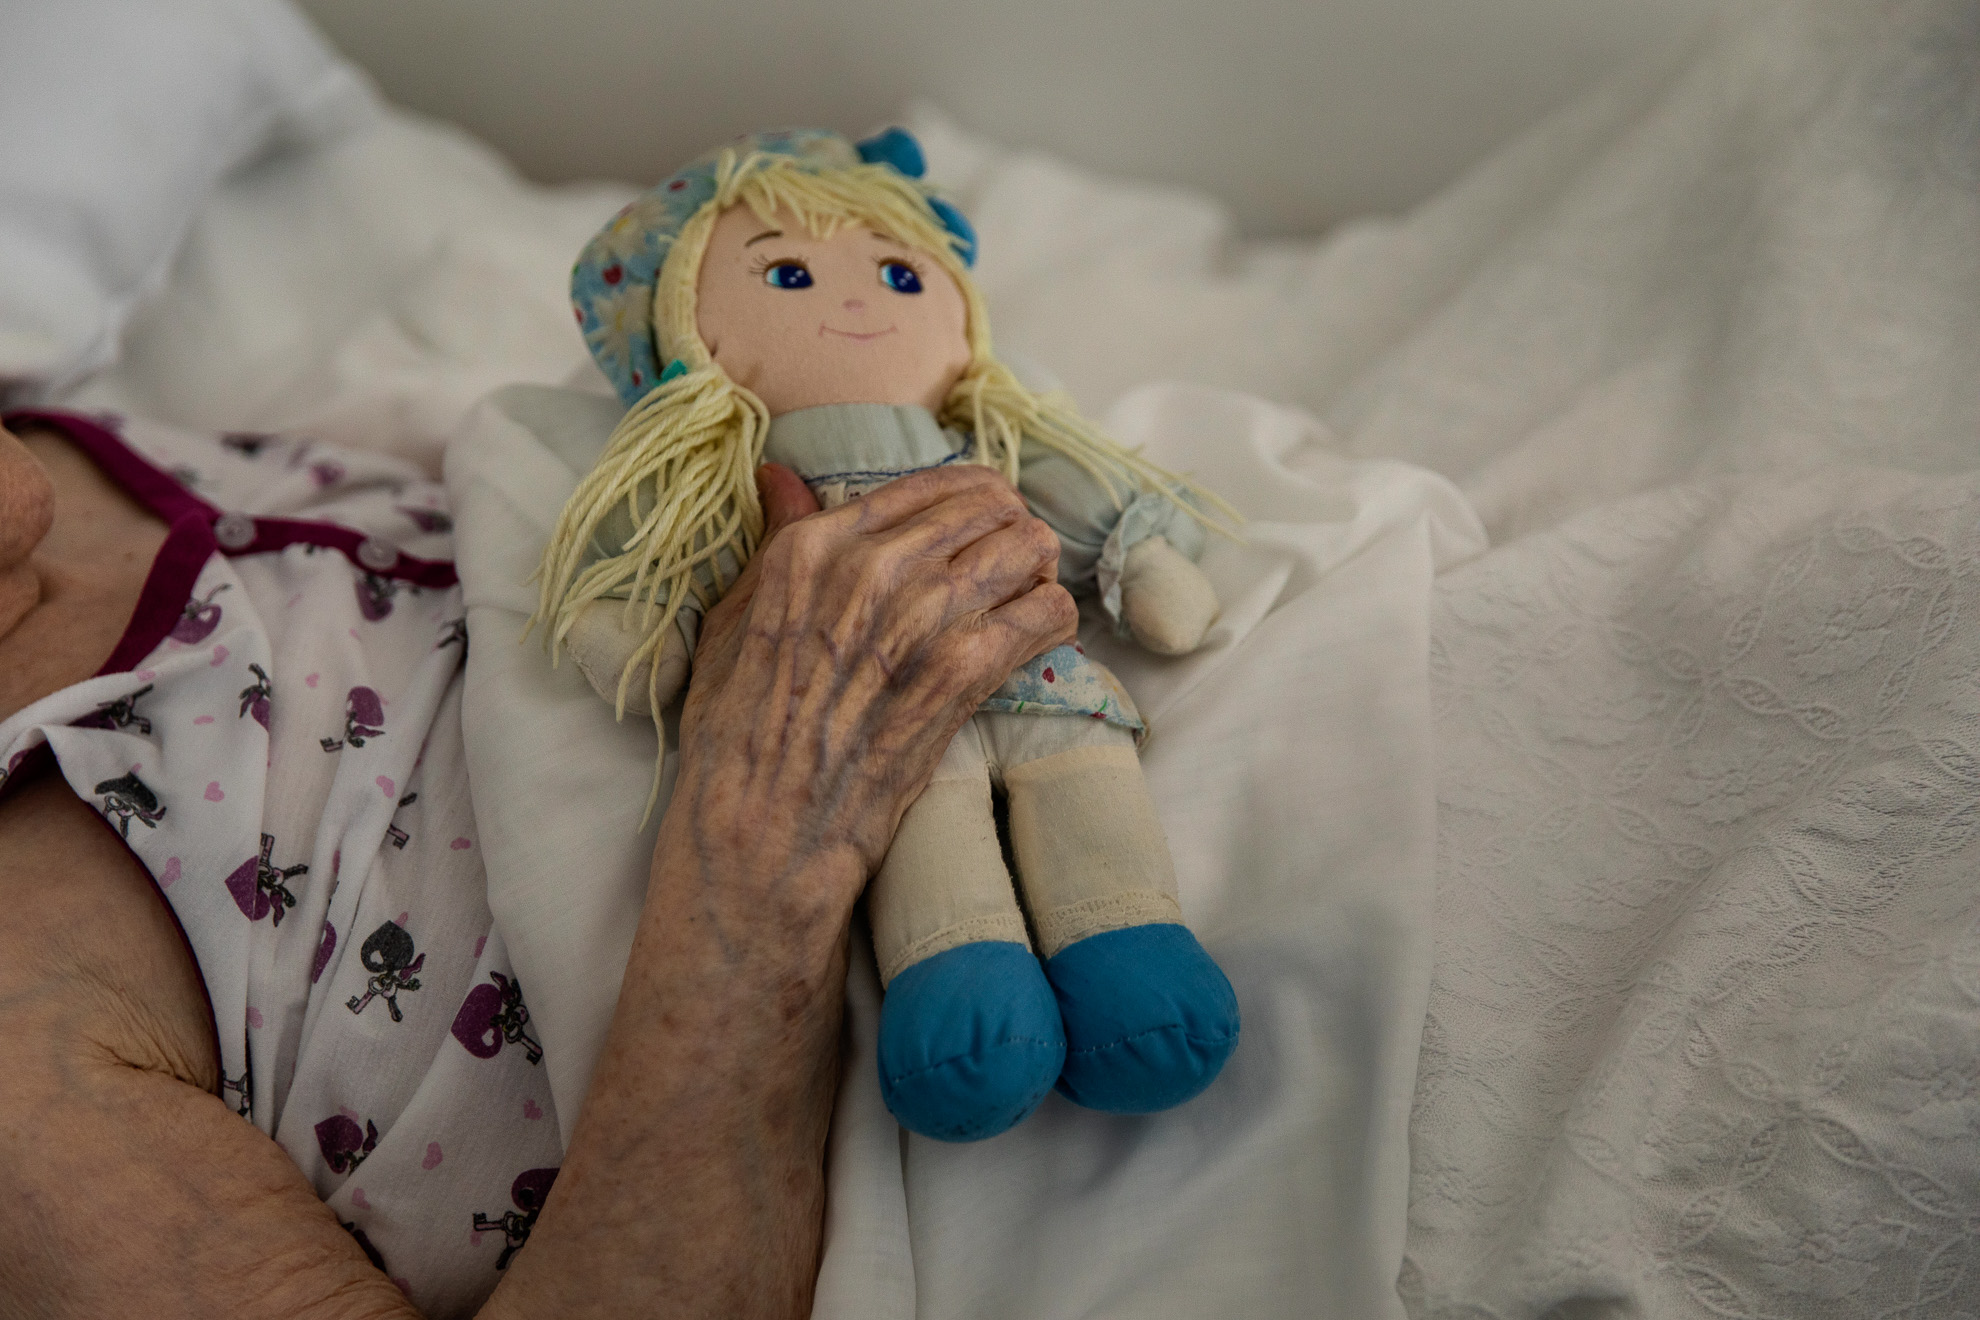 An elderly woman holds a doll in the room of the residence where she remains confined due to the pandemic, province of Barcelona, ​​Spain, April 26, 2020.